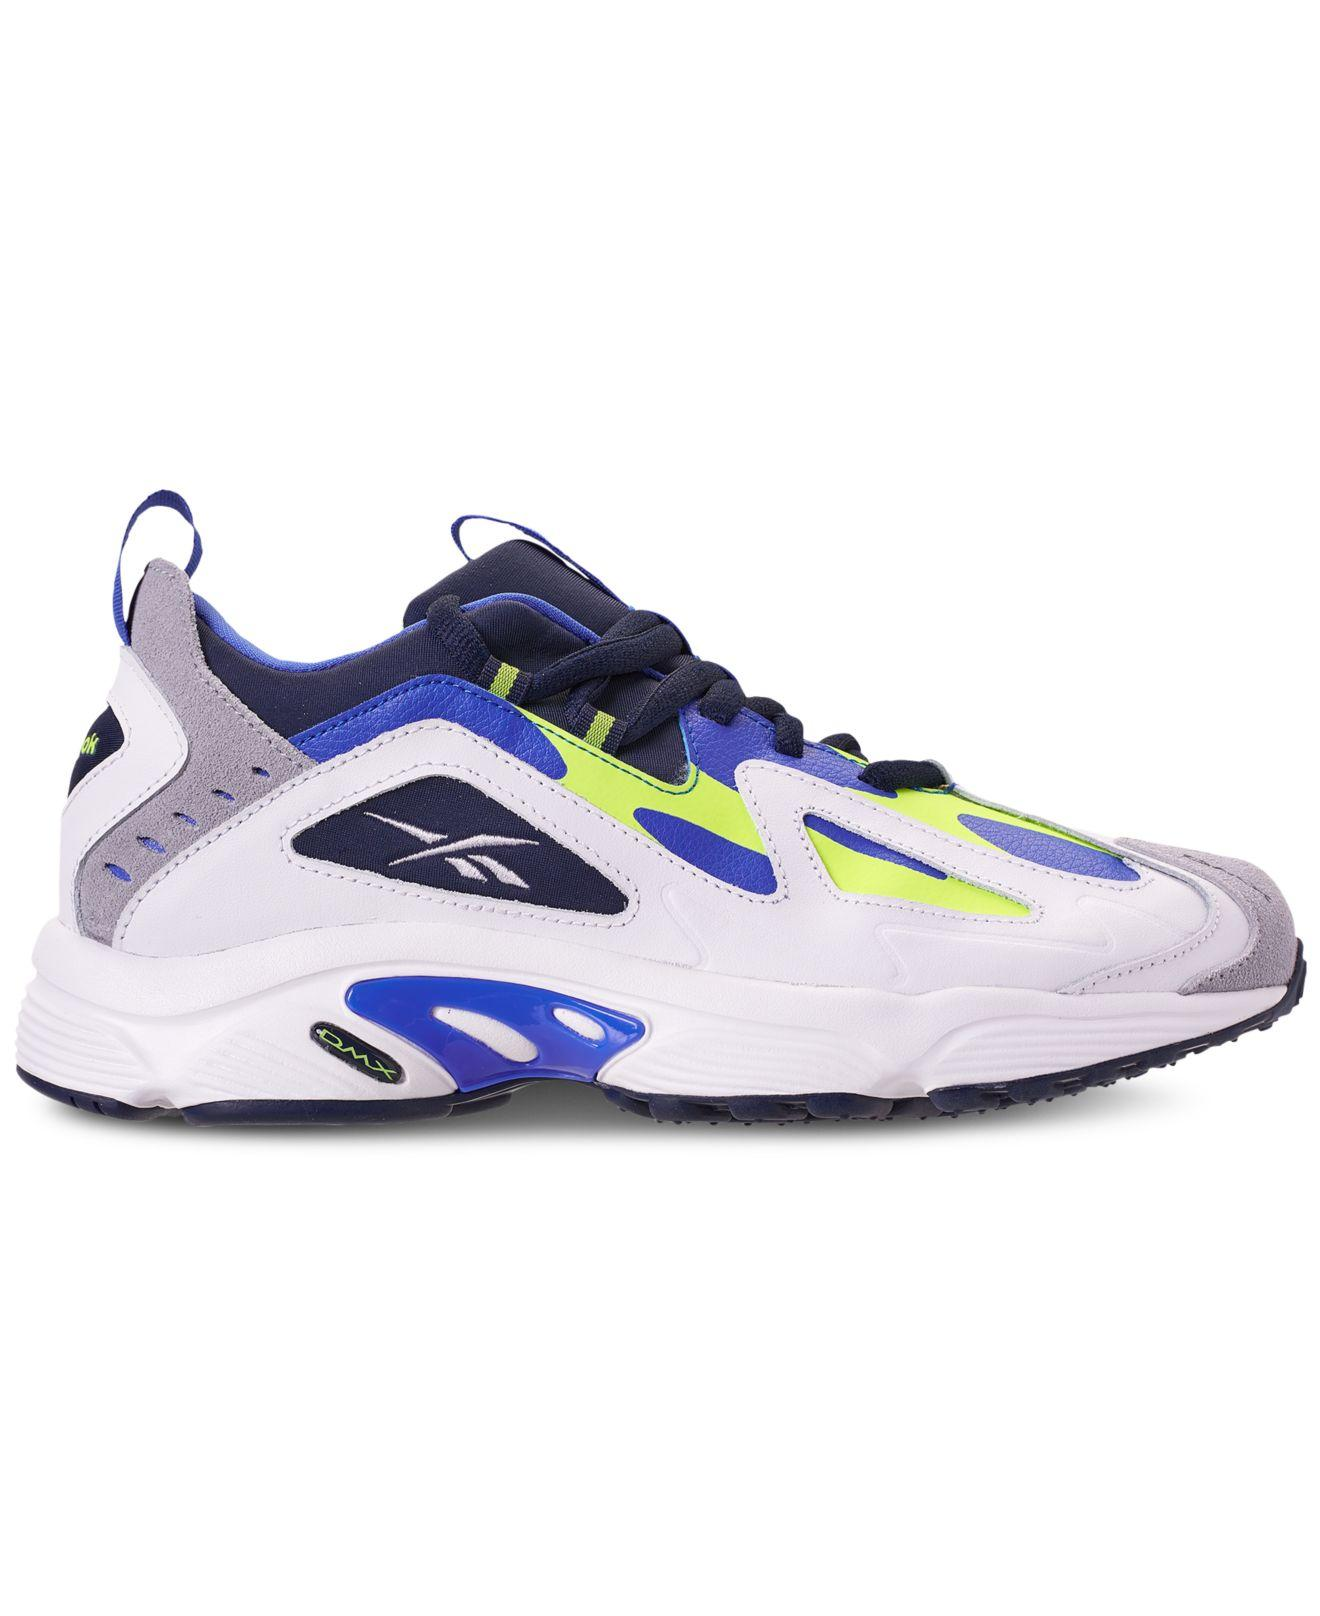 Lyst - Reebok Dmx 1200 Low Casual Sneakers From Finish Line in Blue for Men 93fdb0534